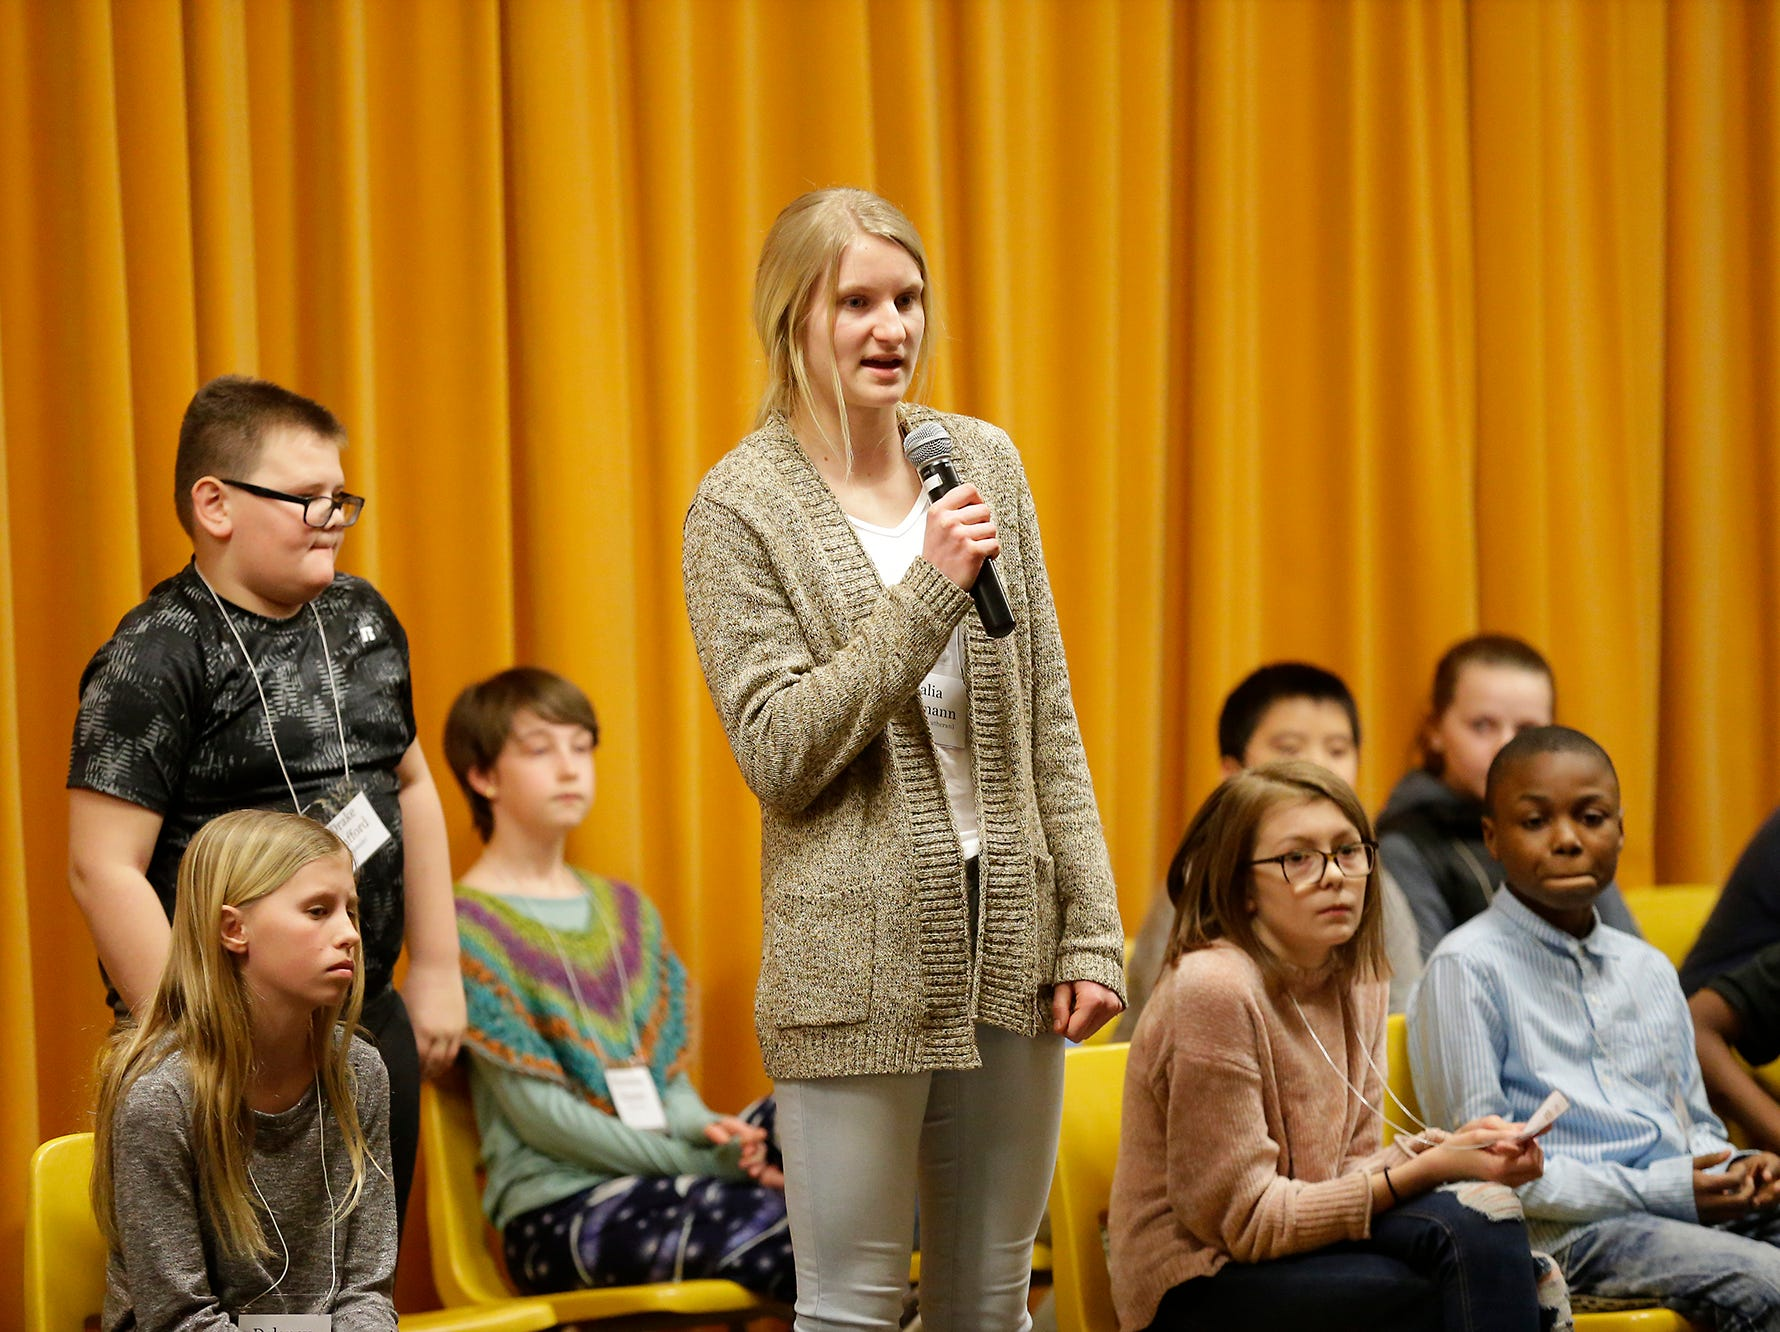 Talia Erdmann of Redeemer Lutheran competes in the Fond du Lac citywide spelling bee Tuesday, February 26, 2019 at These Middle School in Fond du Lac, Wis. Doug Raflik/USA TODAY NETWORK-Wisconsin